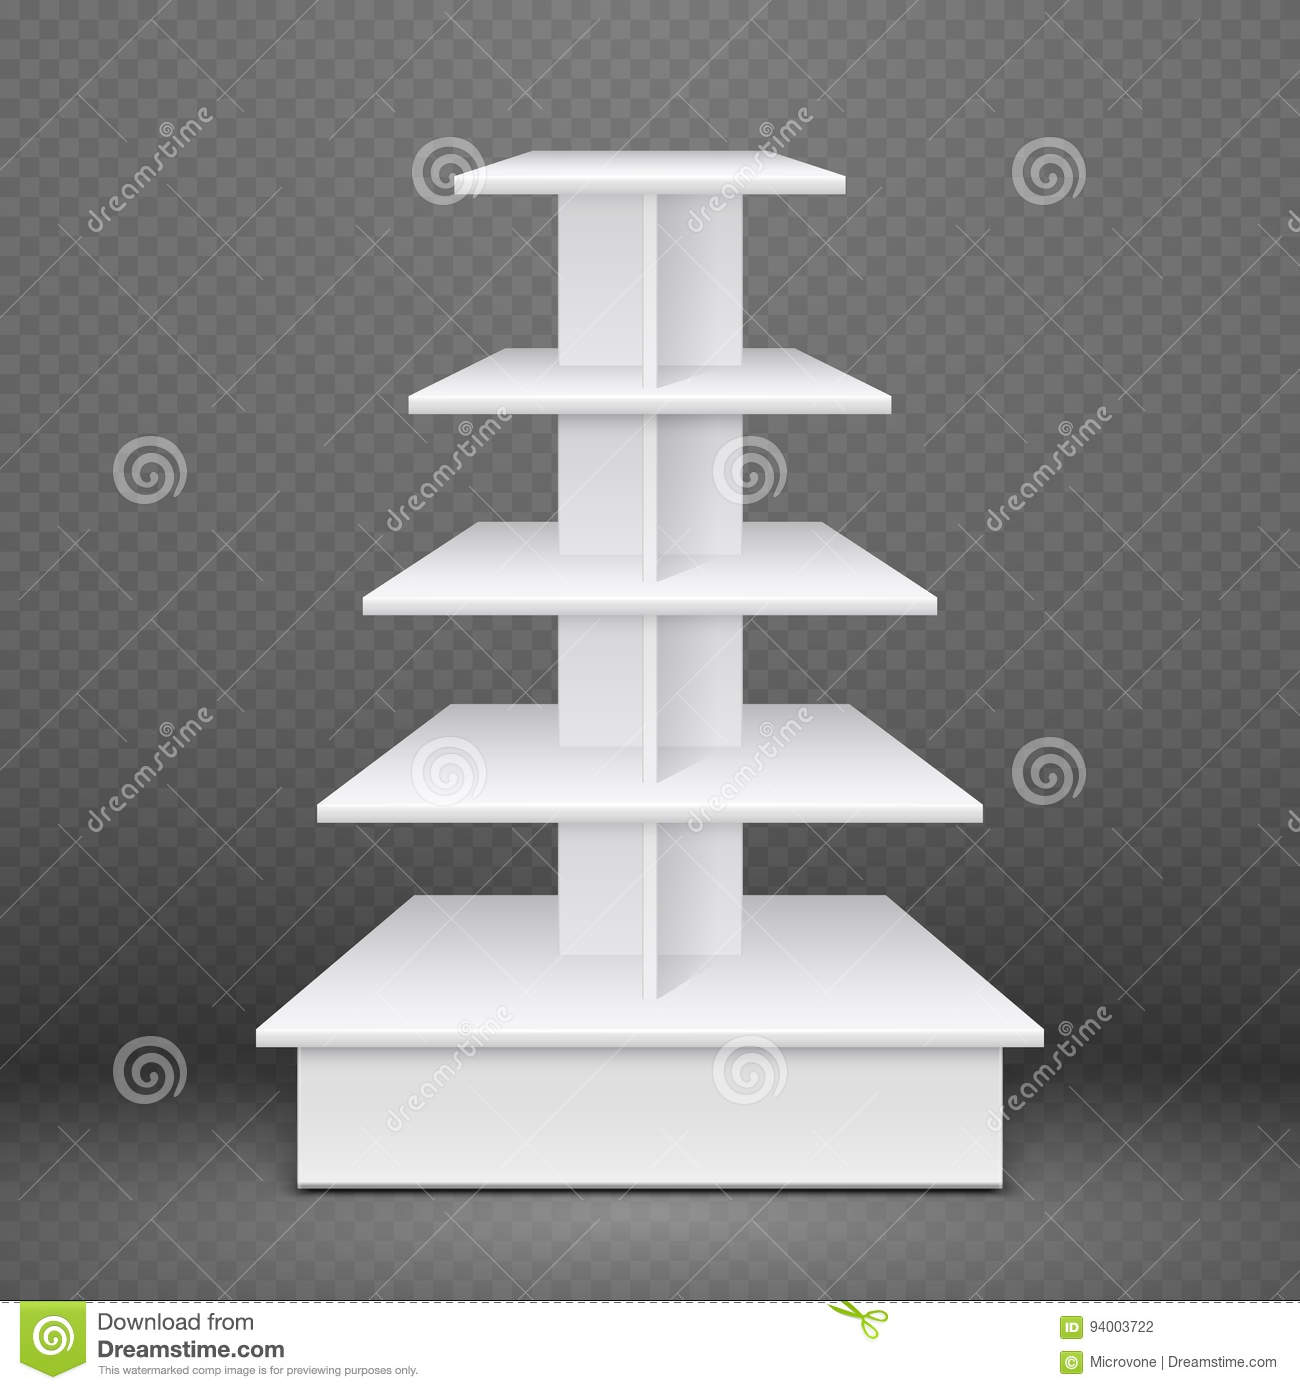 Exhibition Stand With Shelves : White exhibition stand with square shelves retail advertising